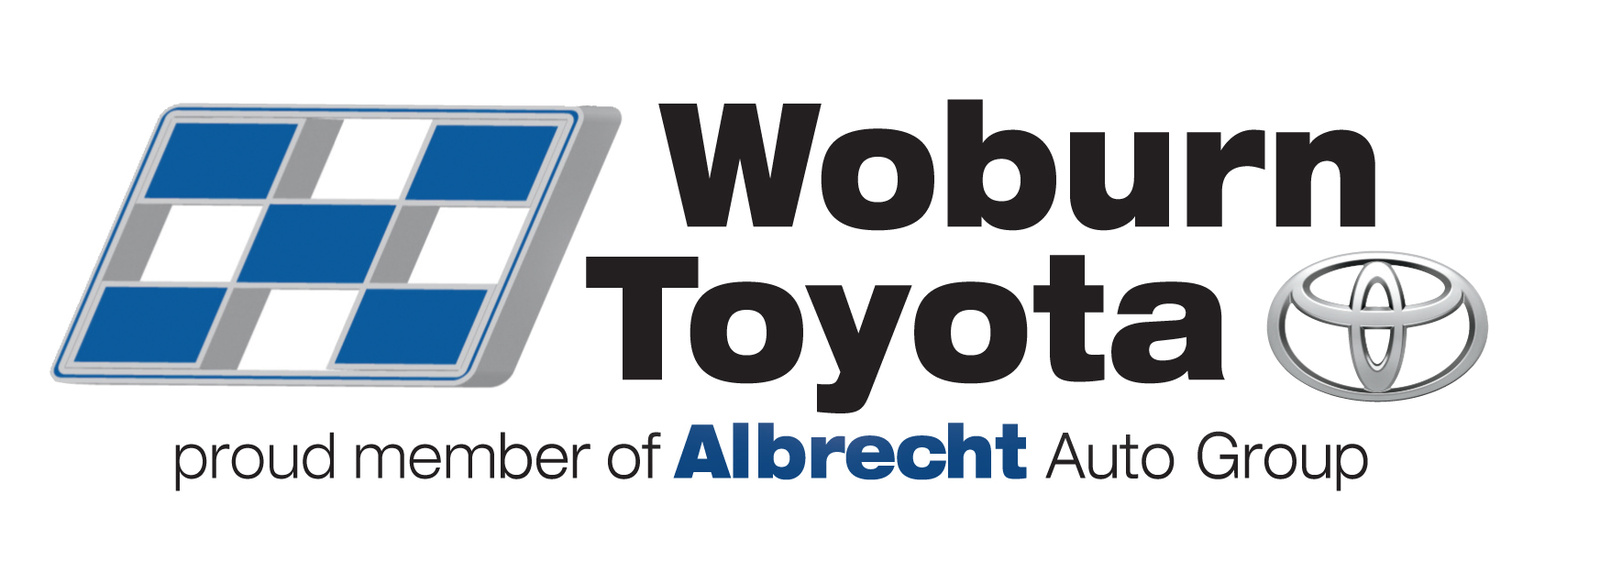 Best picture of general communications woburn ma - Woburn Toyota Woburn Ma Read Consumer Reviews Browse Used And New Cars For Sale